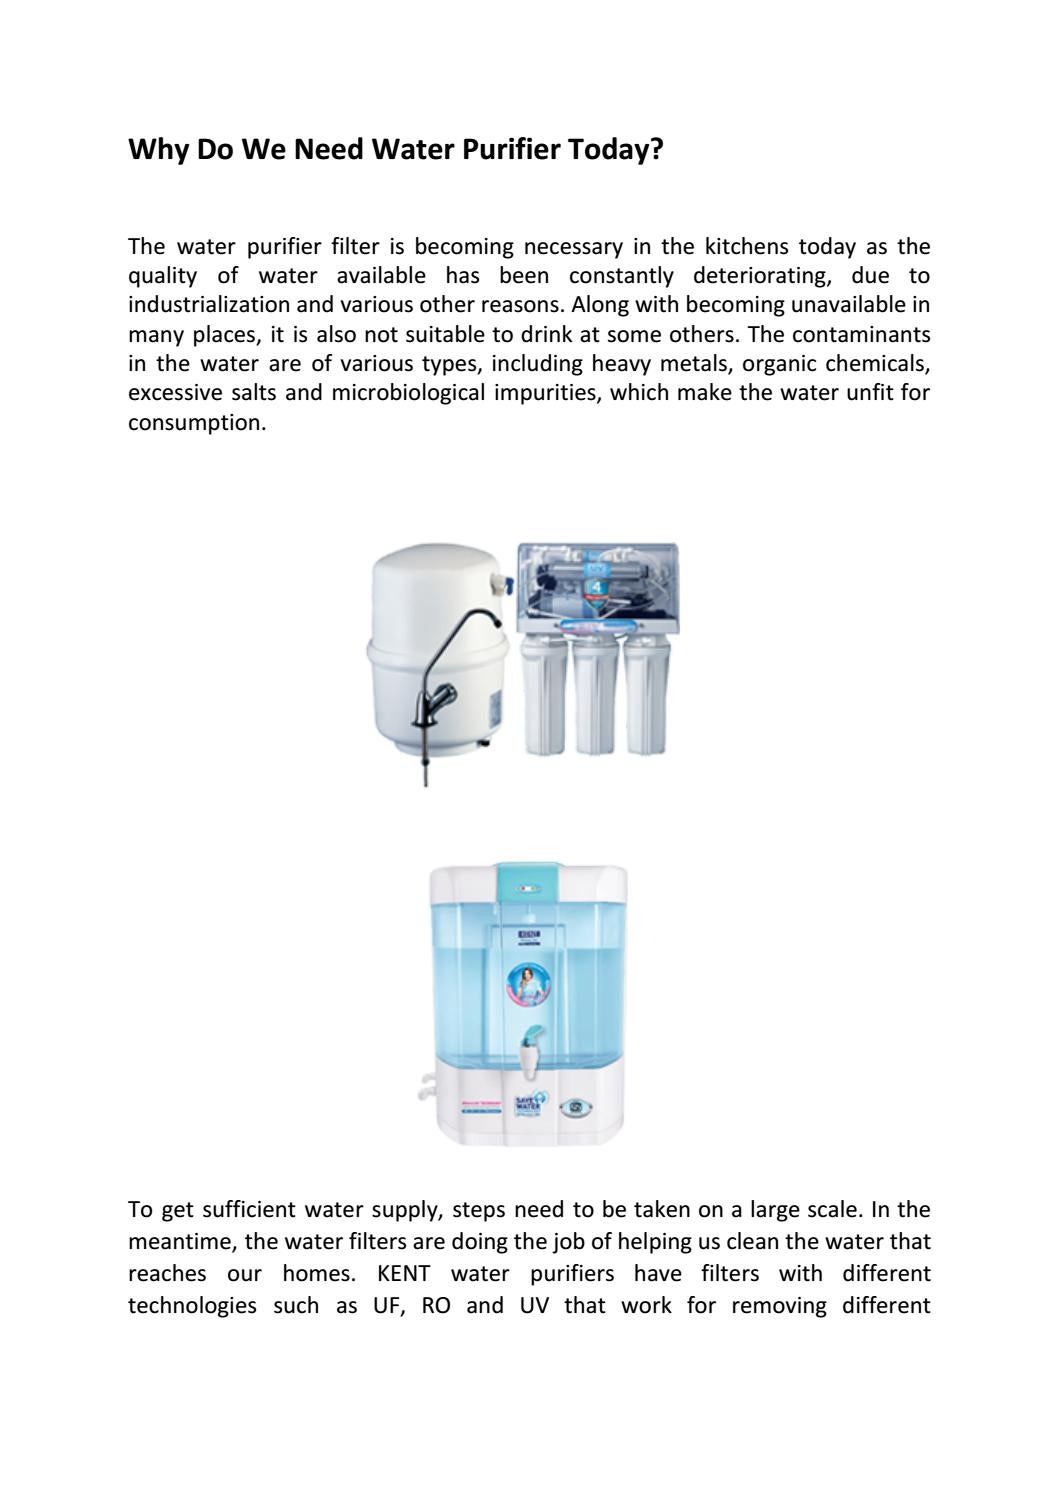 Why Do We Need Water Purifier Today by Shivangi - issuu